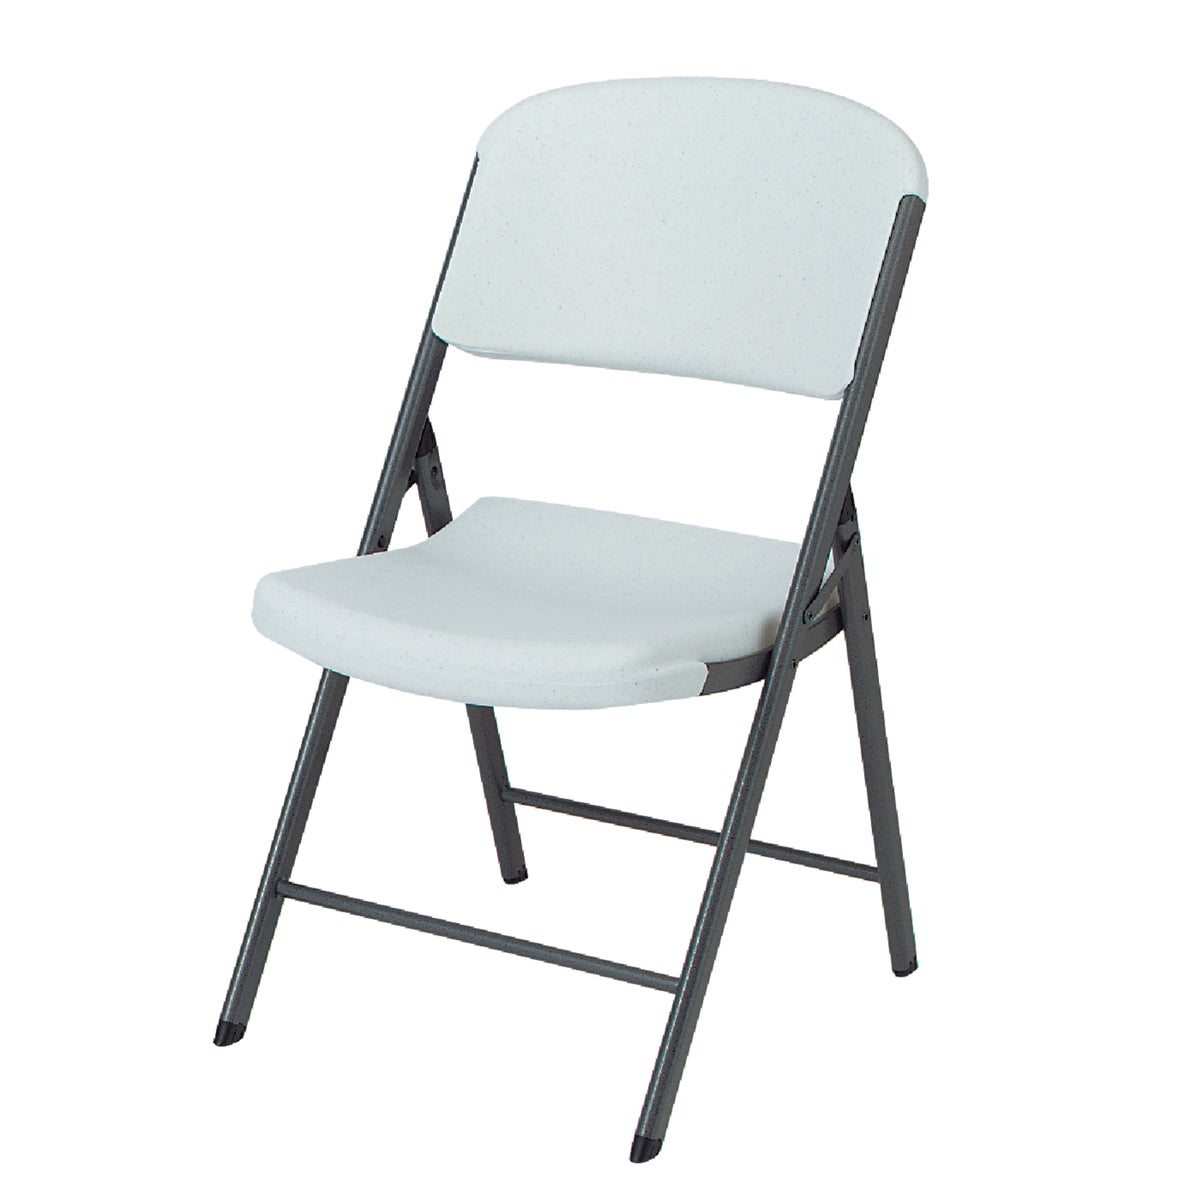 WHITE FOLDING CHAIR - 2802 by Lifetime Prod Inc